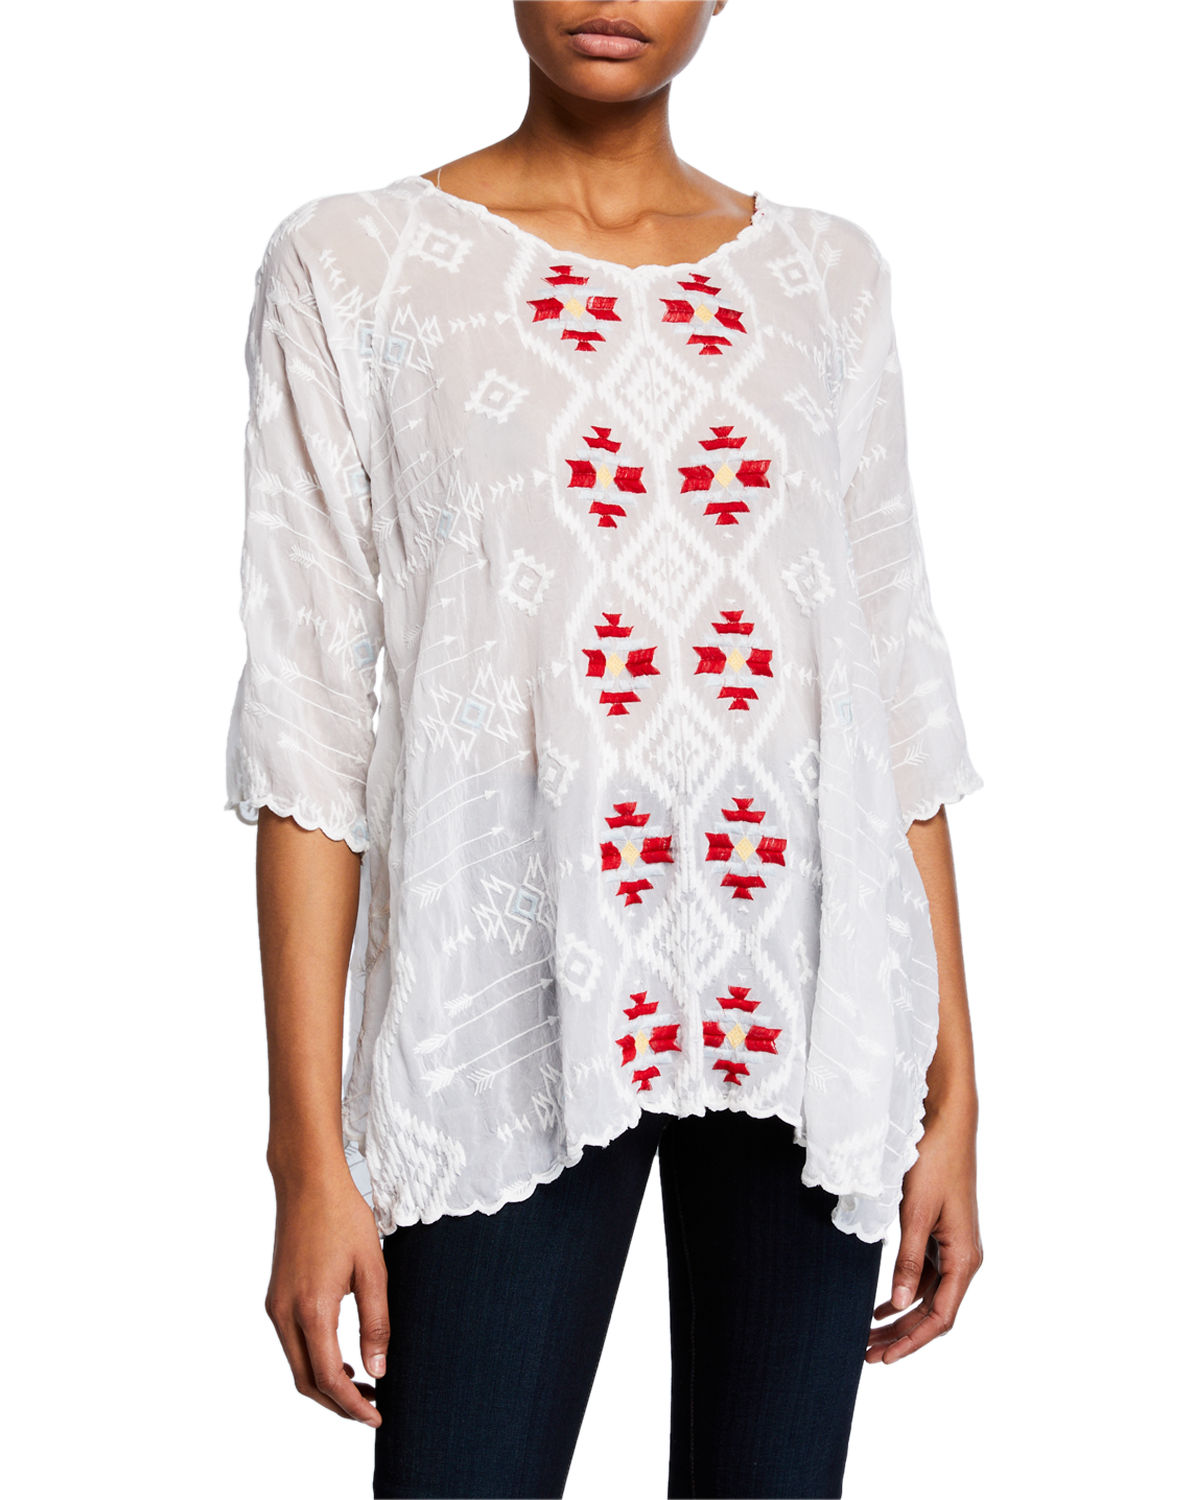 Johnny Was Tops ASHER 3/4-SLEEVE EMBROIDERED TUNIC